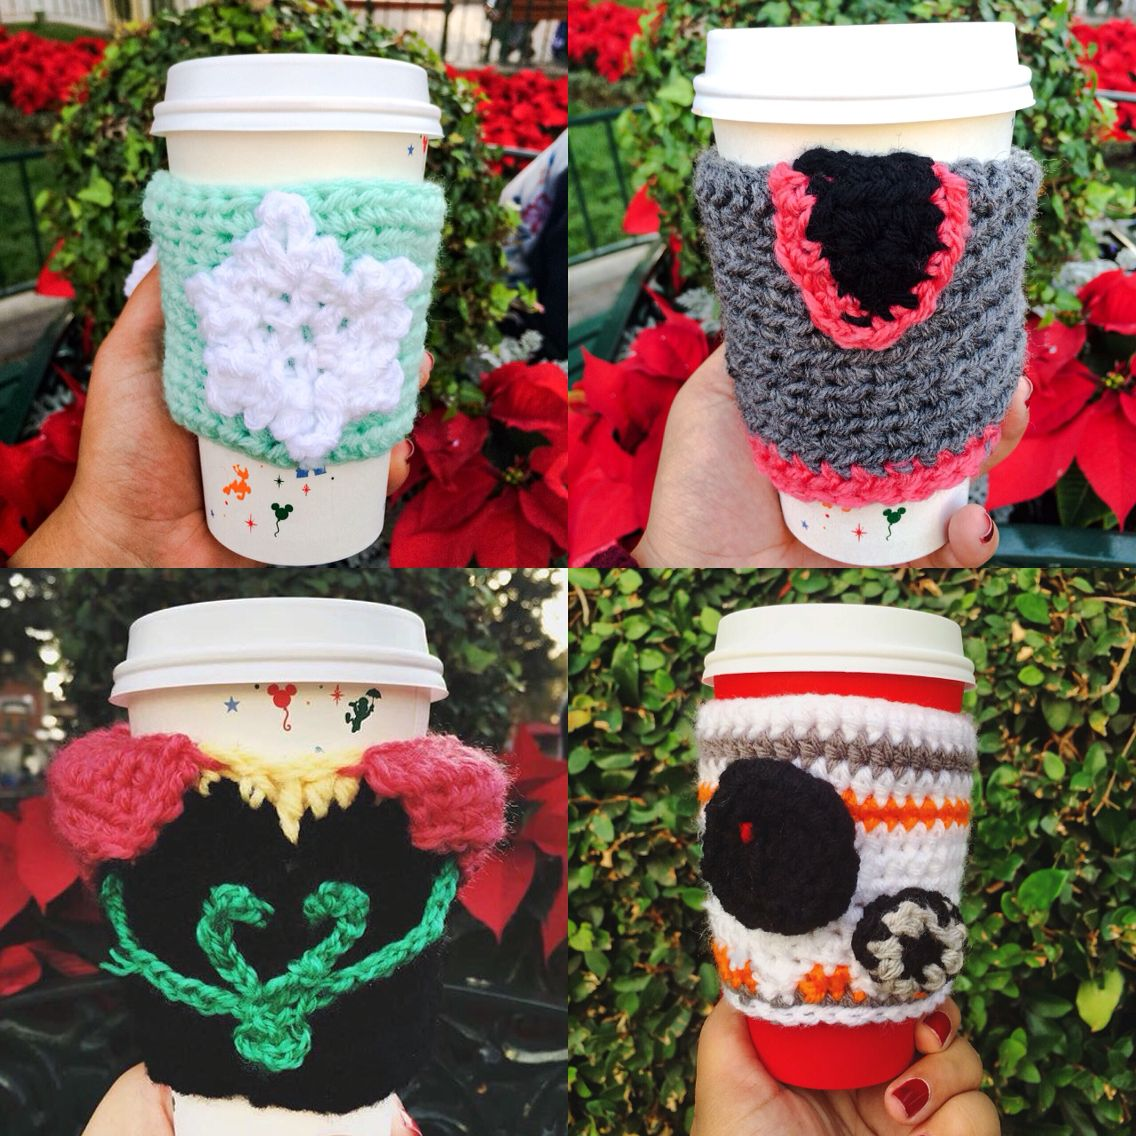 Disney Crochet Coffee Cozy/Sleeves [Anna, Elsa, Kristoff, BB-8 ...